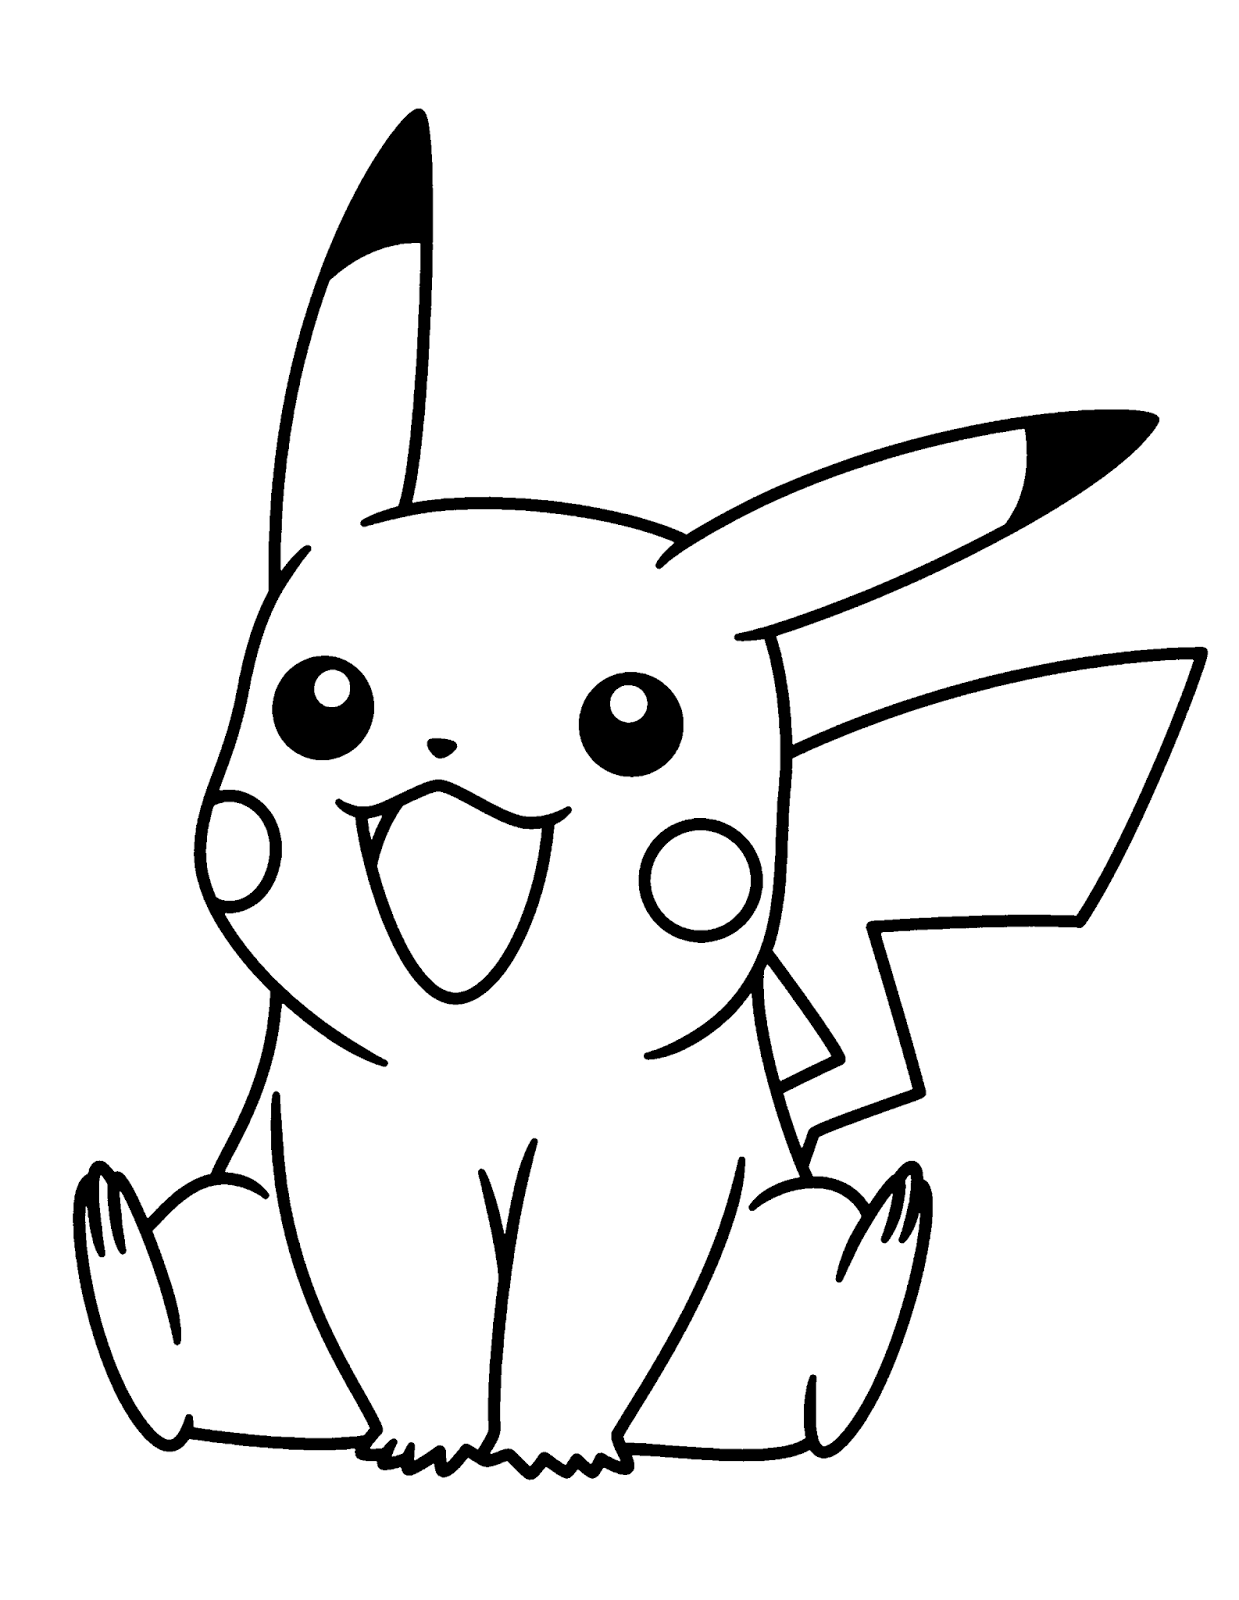 pokemon coloring pages free printable - photo#15